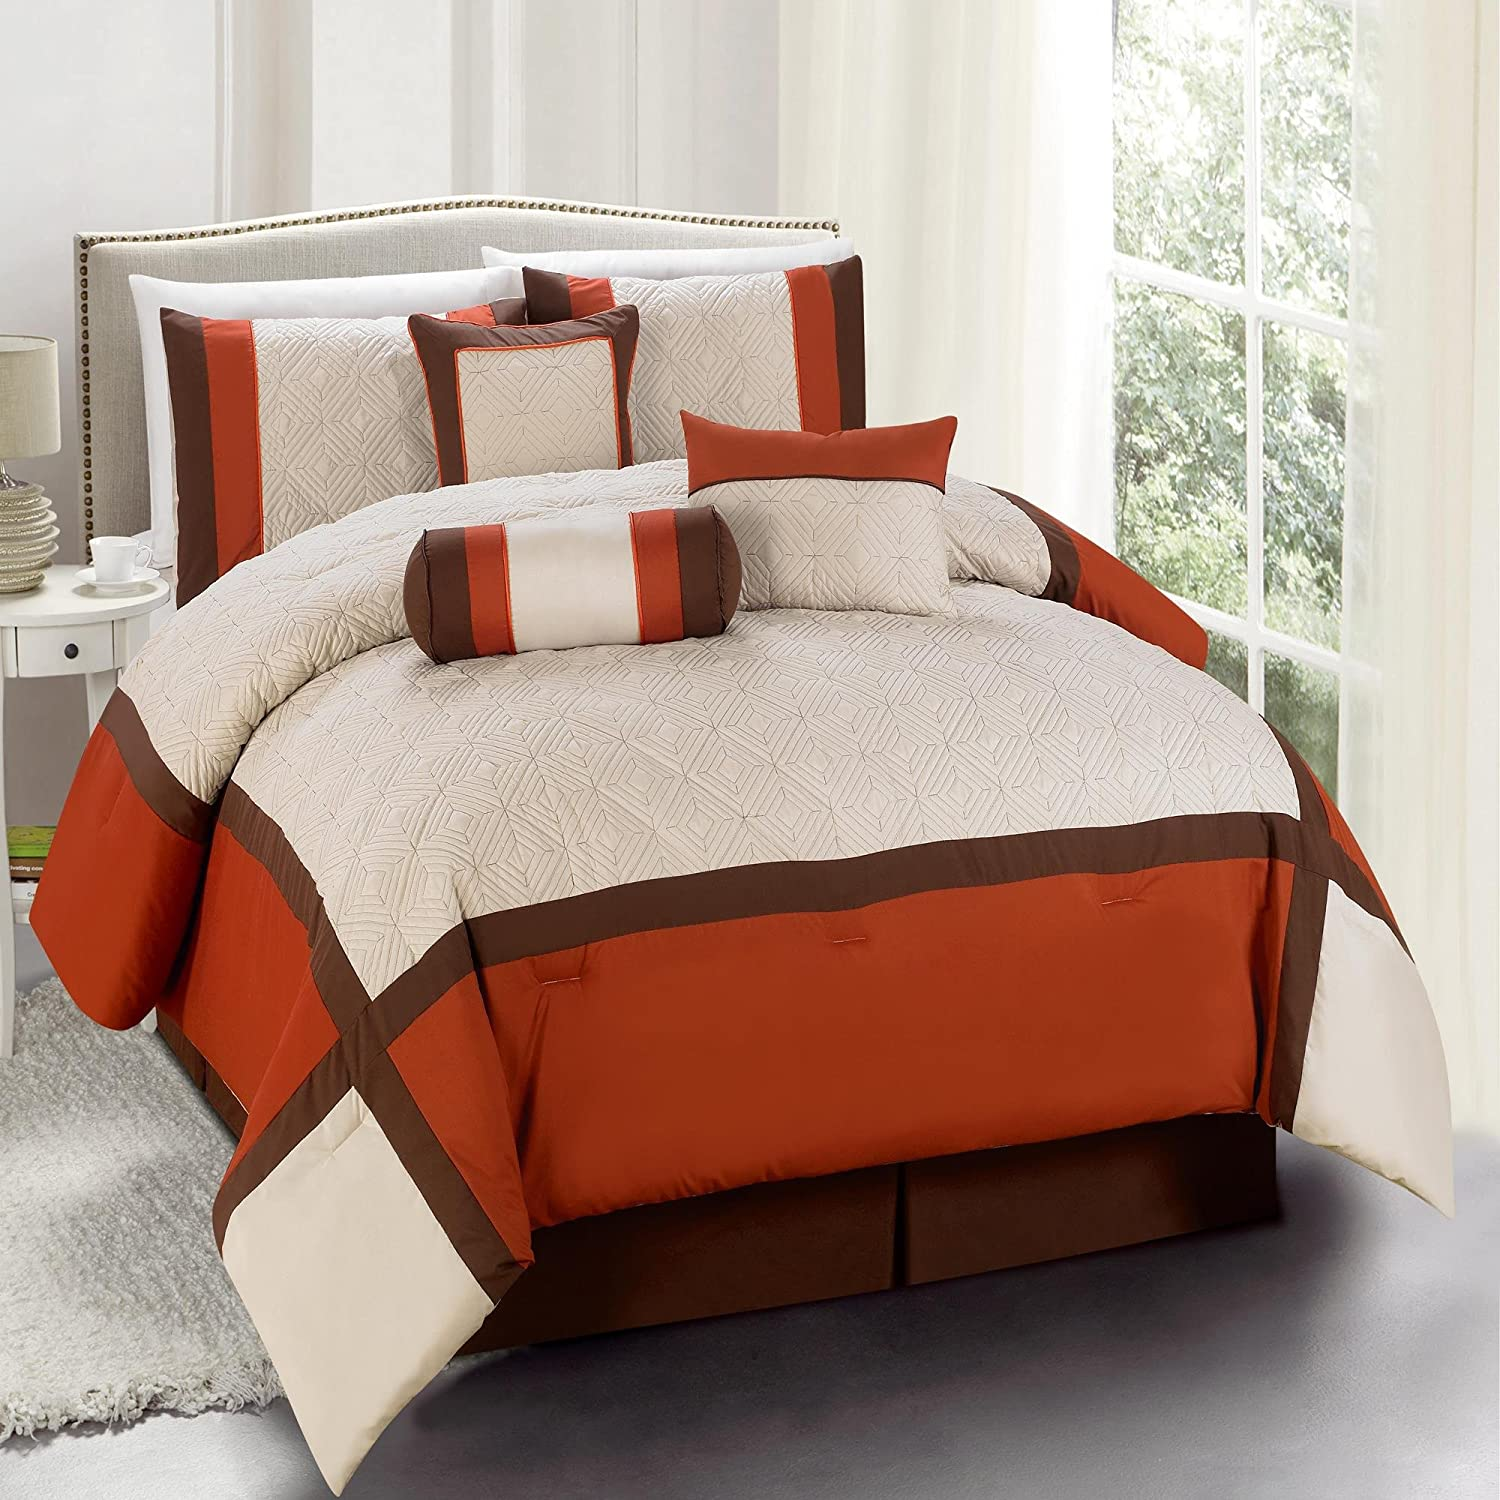 Orange Bedding Sets Beautiful Earthy Decor For Any